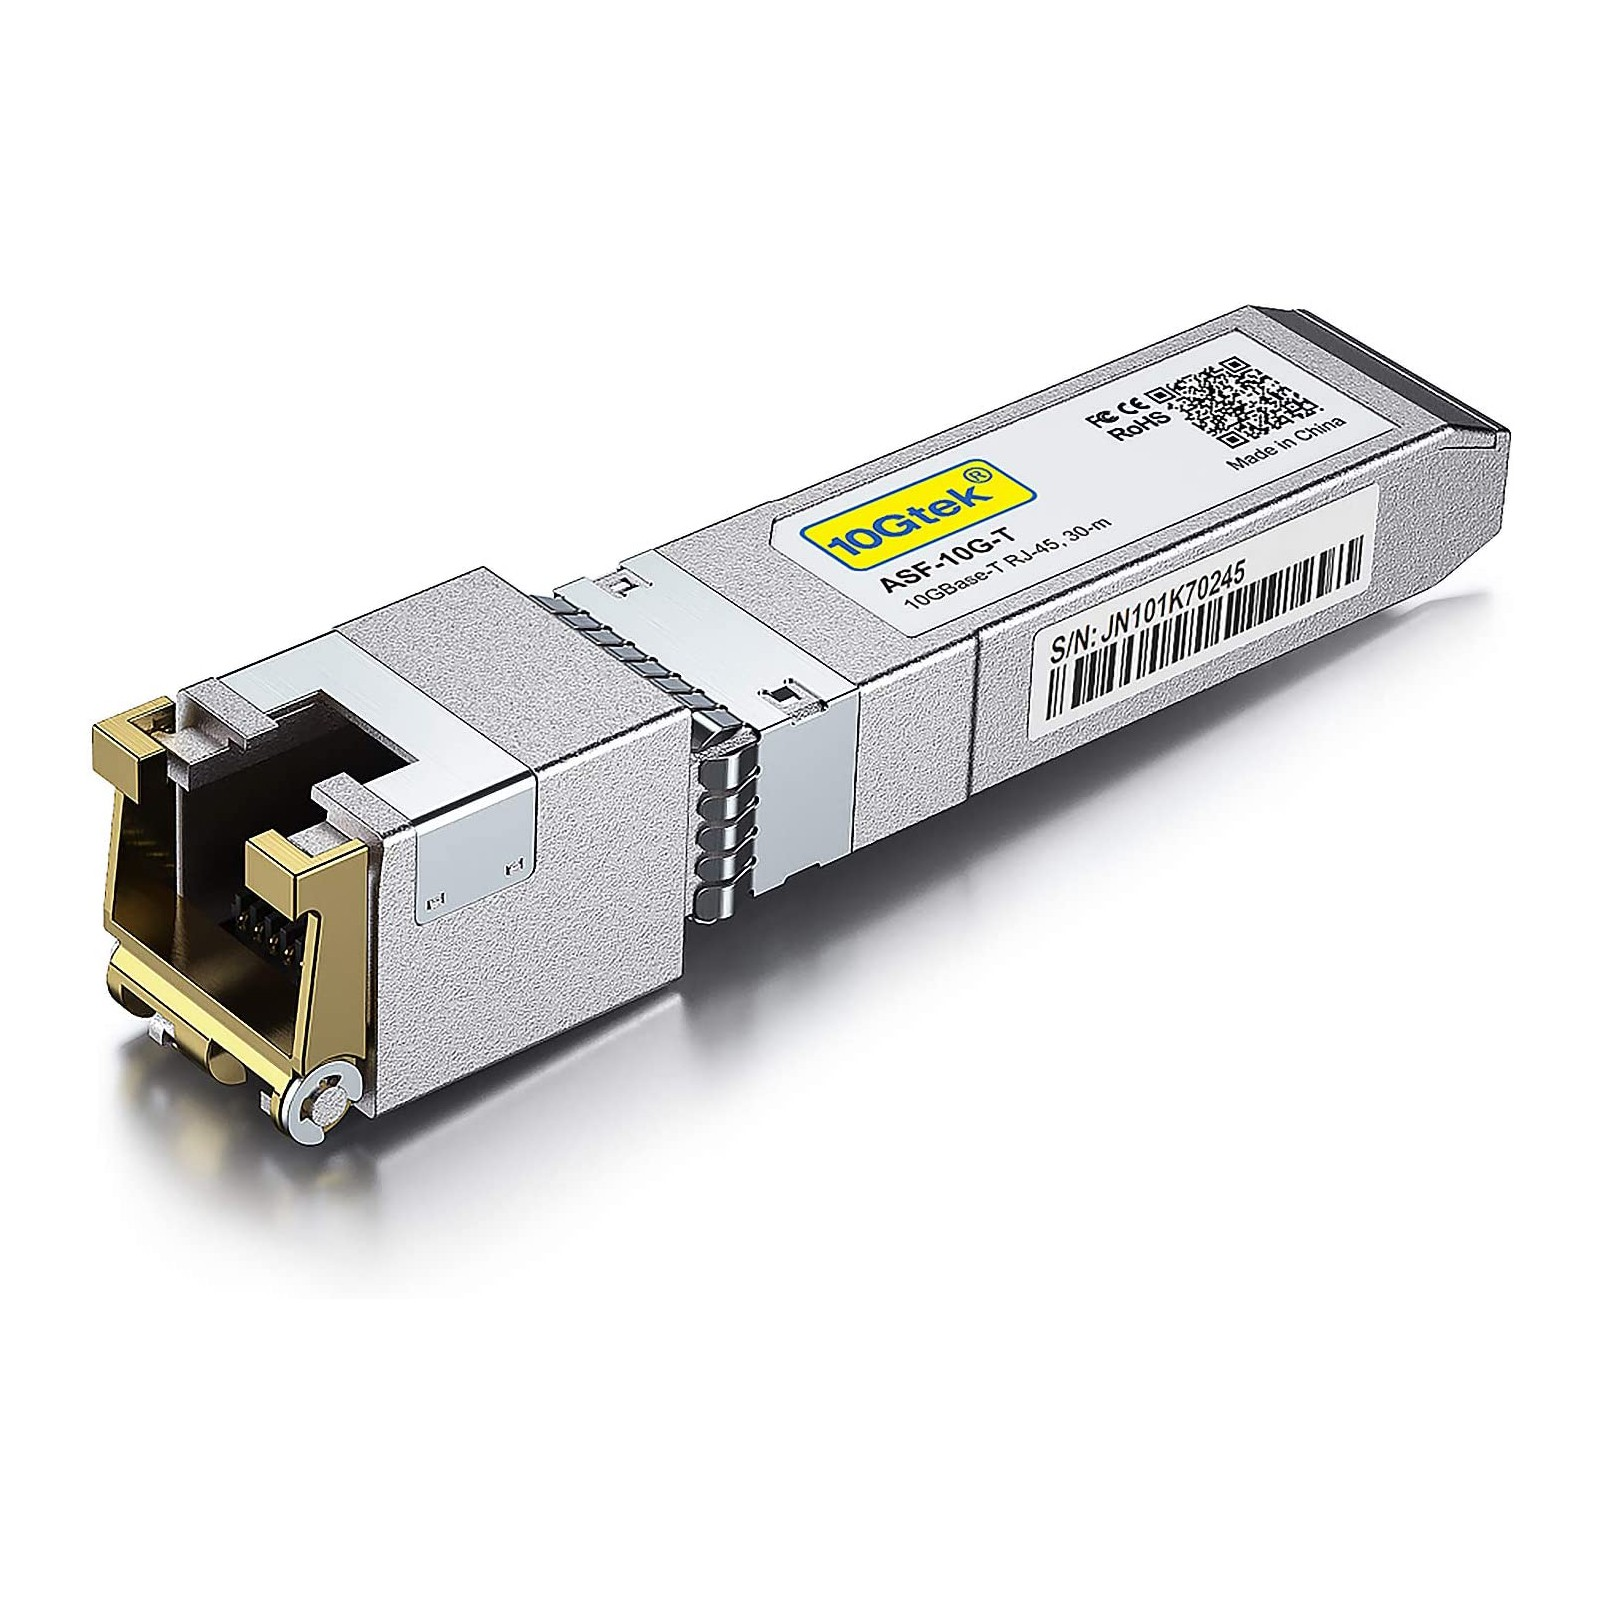 10GBase-T SFP+ Transceiver, 10G T, 10G Copper, RJ-45 SFP+ CAT.6a up to 30 meters Compatible for Chelsio